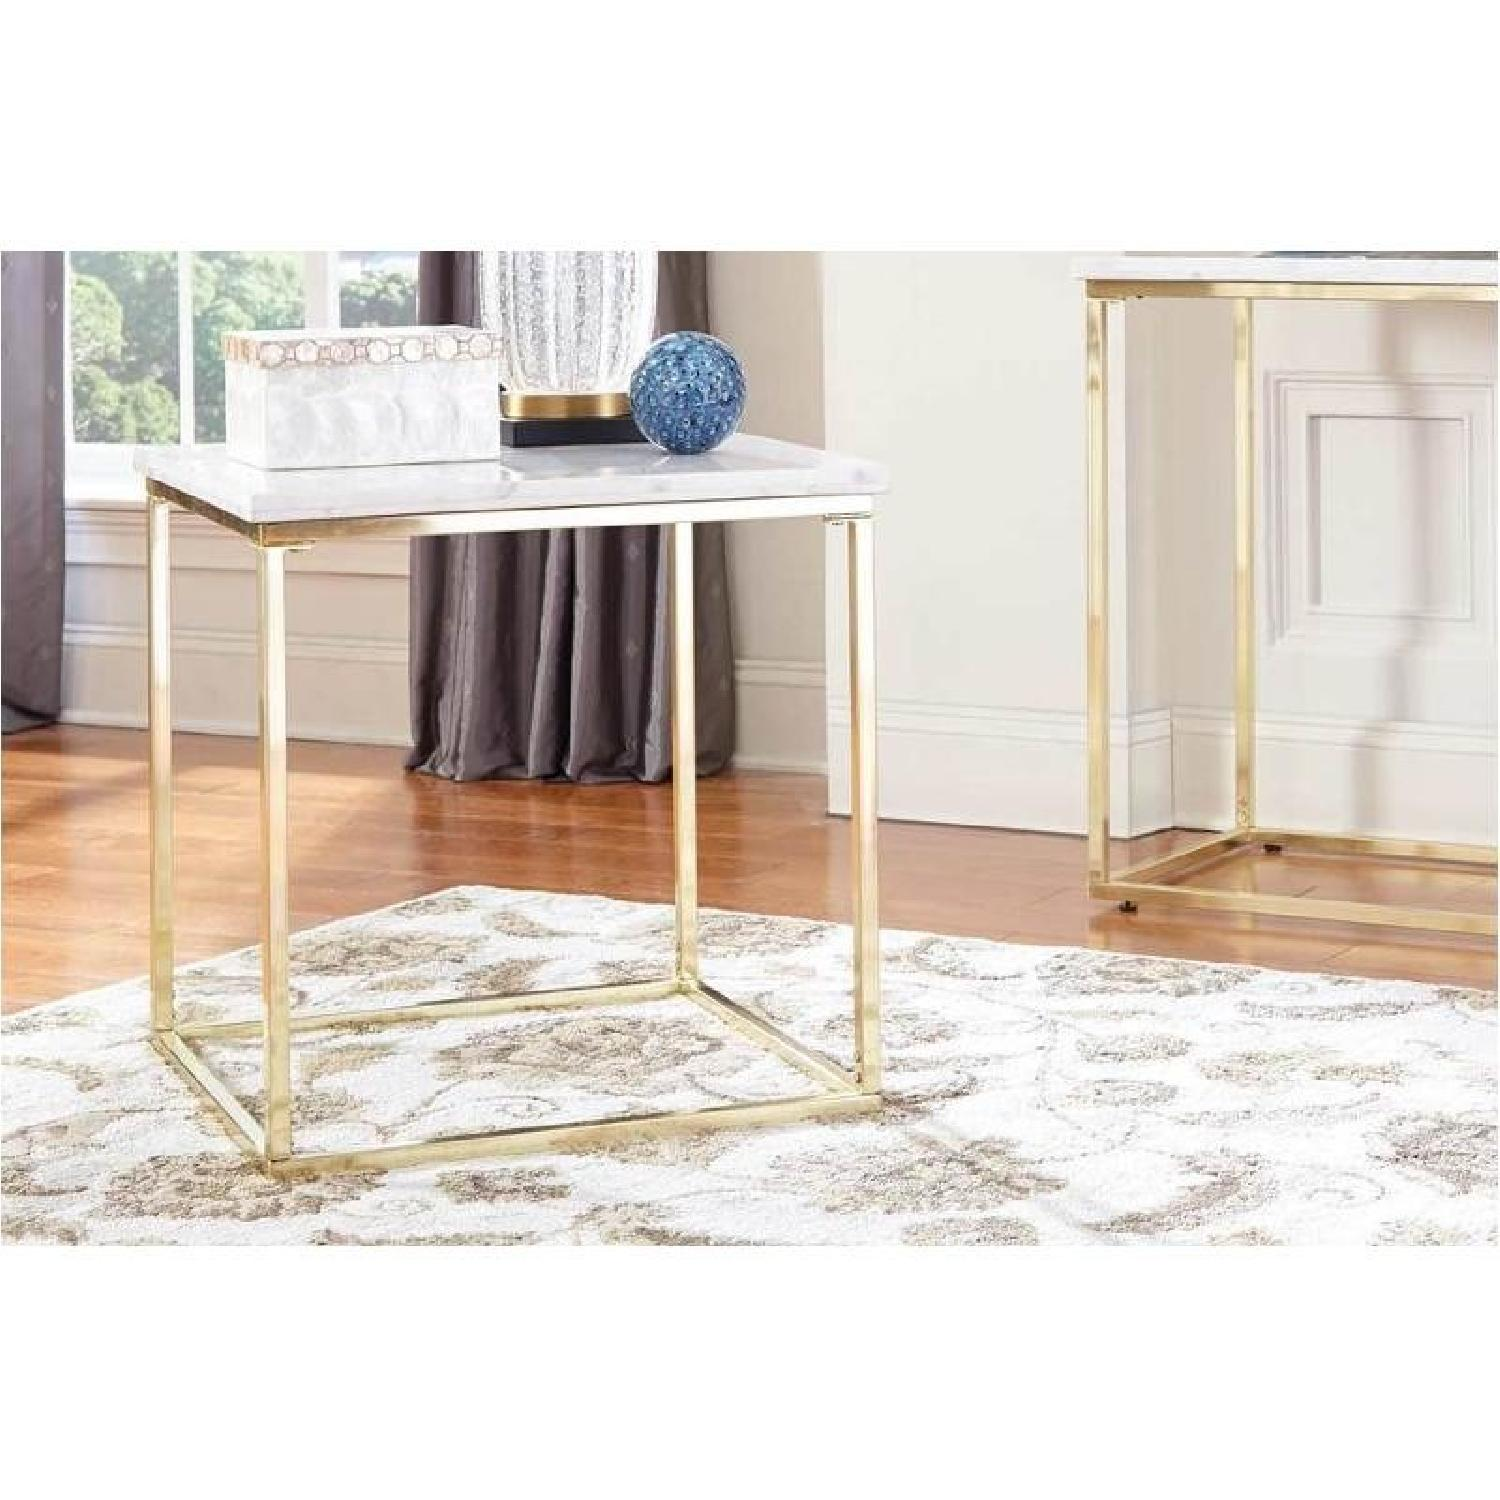 Marble Top End Table w/ Brass Legs - image-1